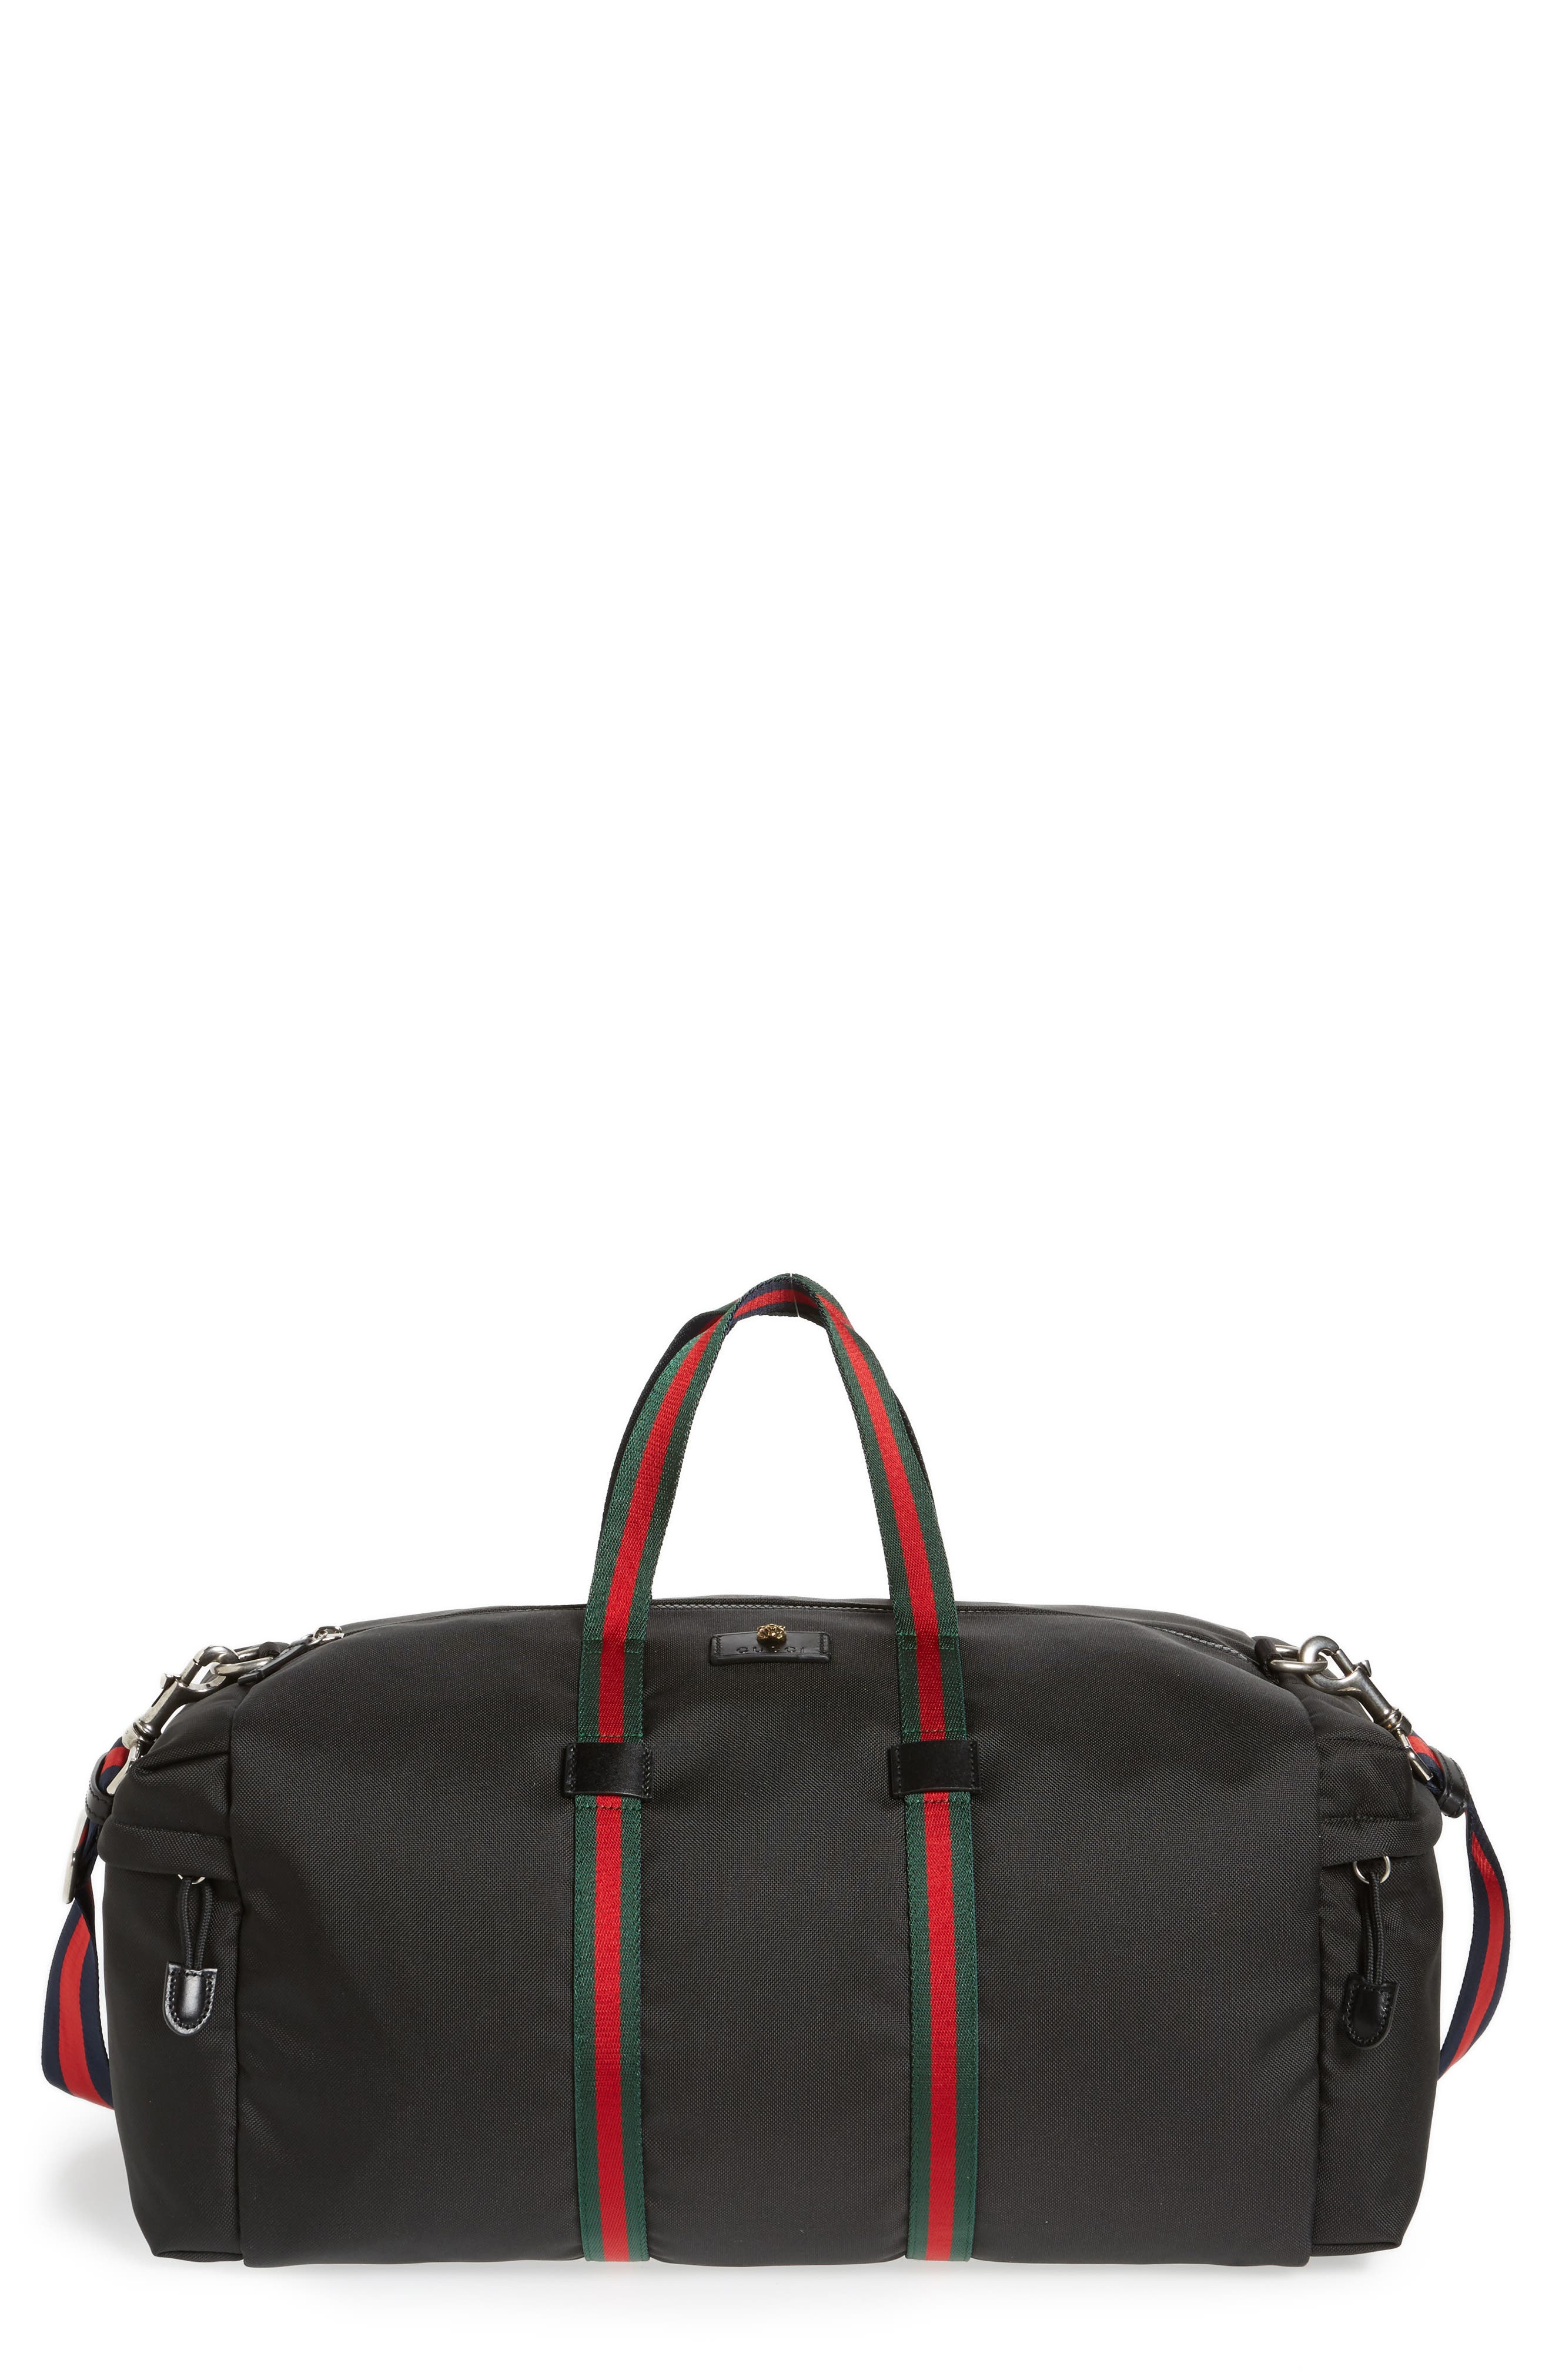 Alternate Image 1 Selected - Gucci Techpack Canvas Duffle Bag